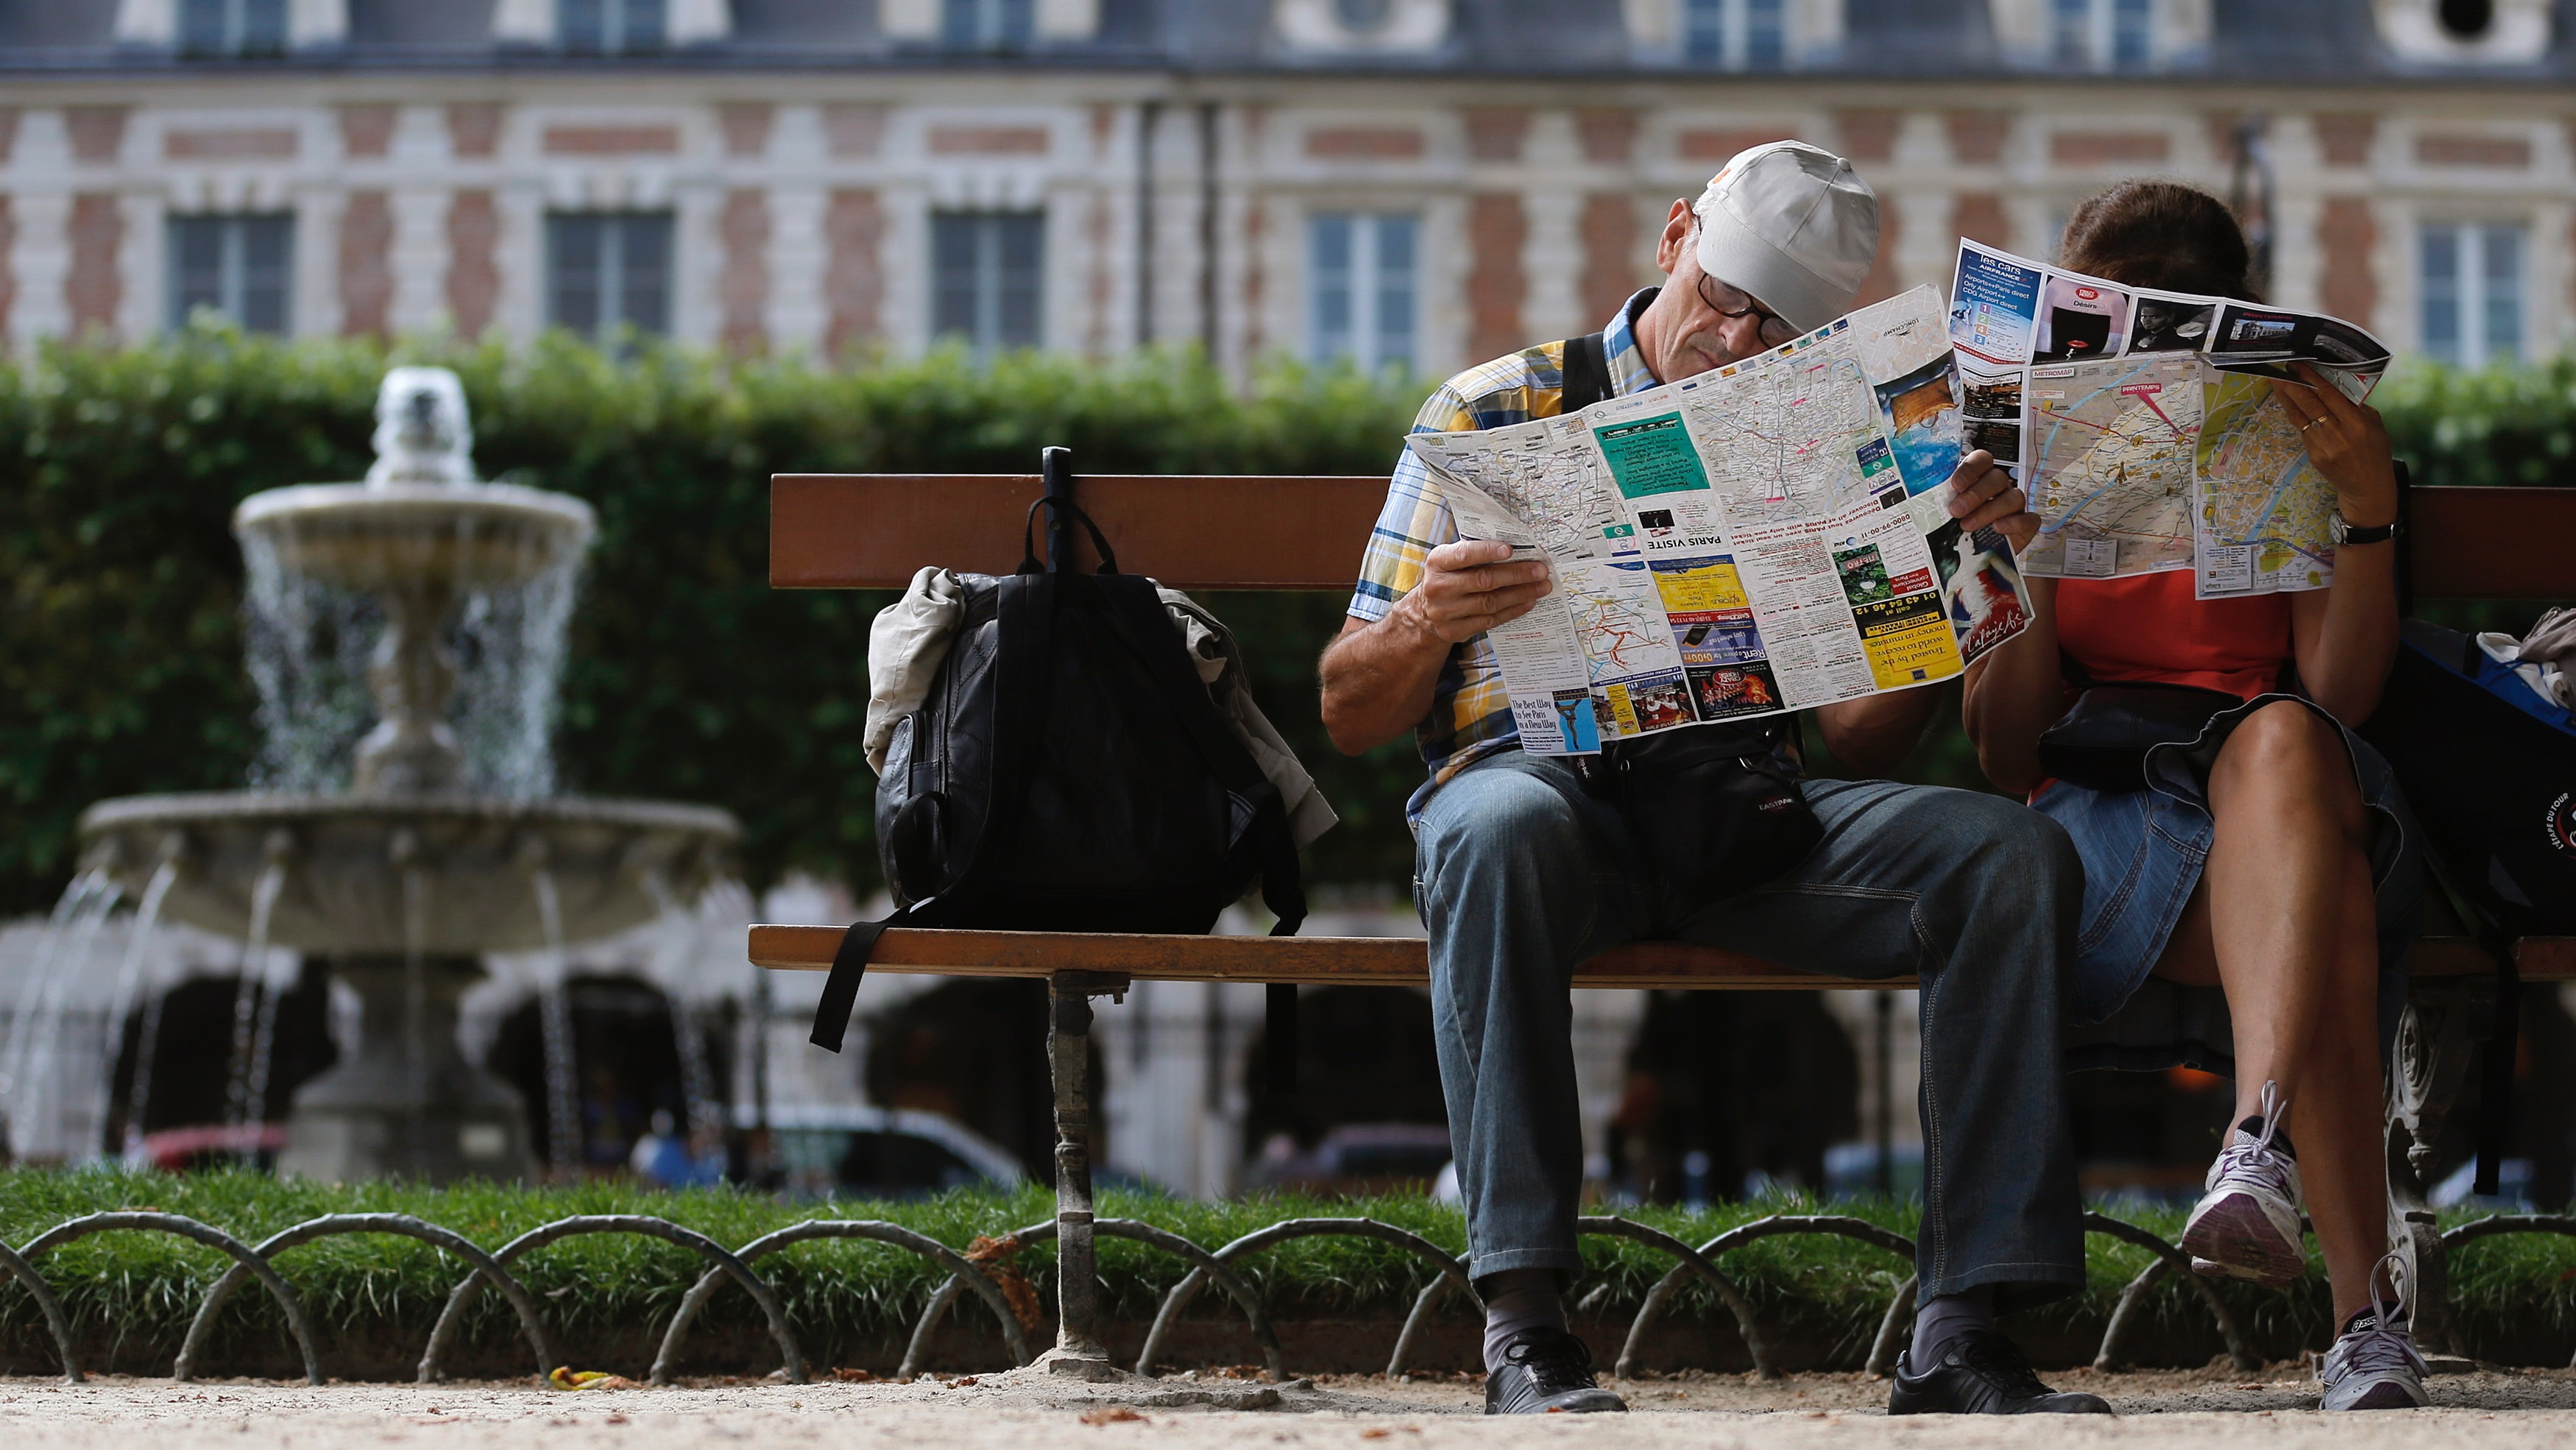 Tourists check city maps while sitting on a bench in the gardens at the Place des Vosges square, with landmark architecture of building that date from the seventeenth century, in Paris, August 14, 2013. REUTERS/Christian Hartmann (FRANCE - Tags: CITYSPACE SOCIETY TRAVEL) - RTX12KZF